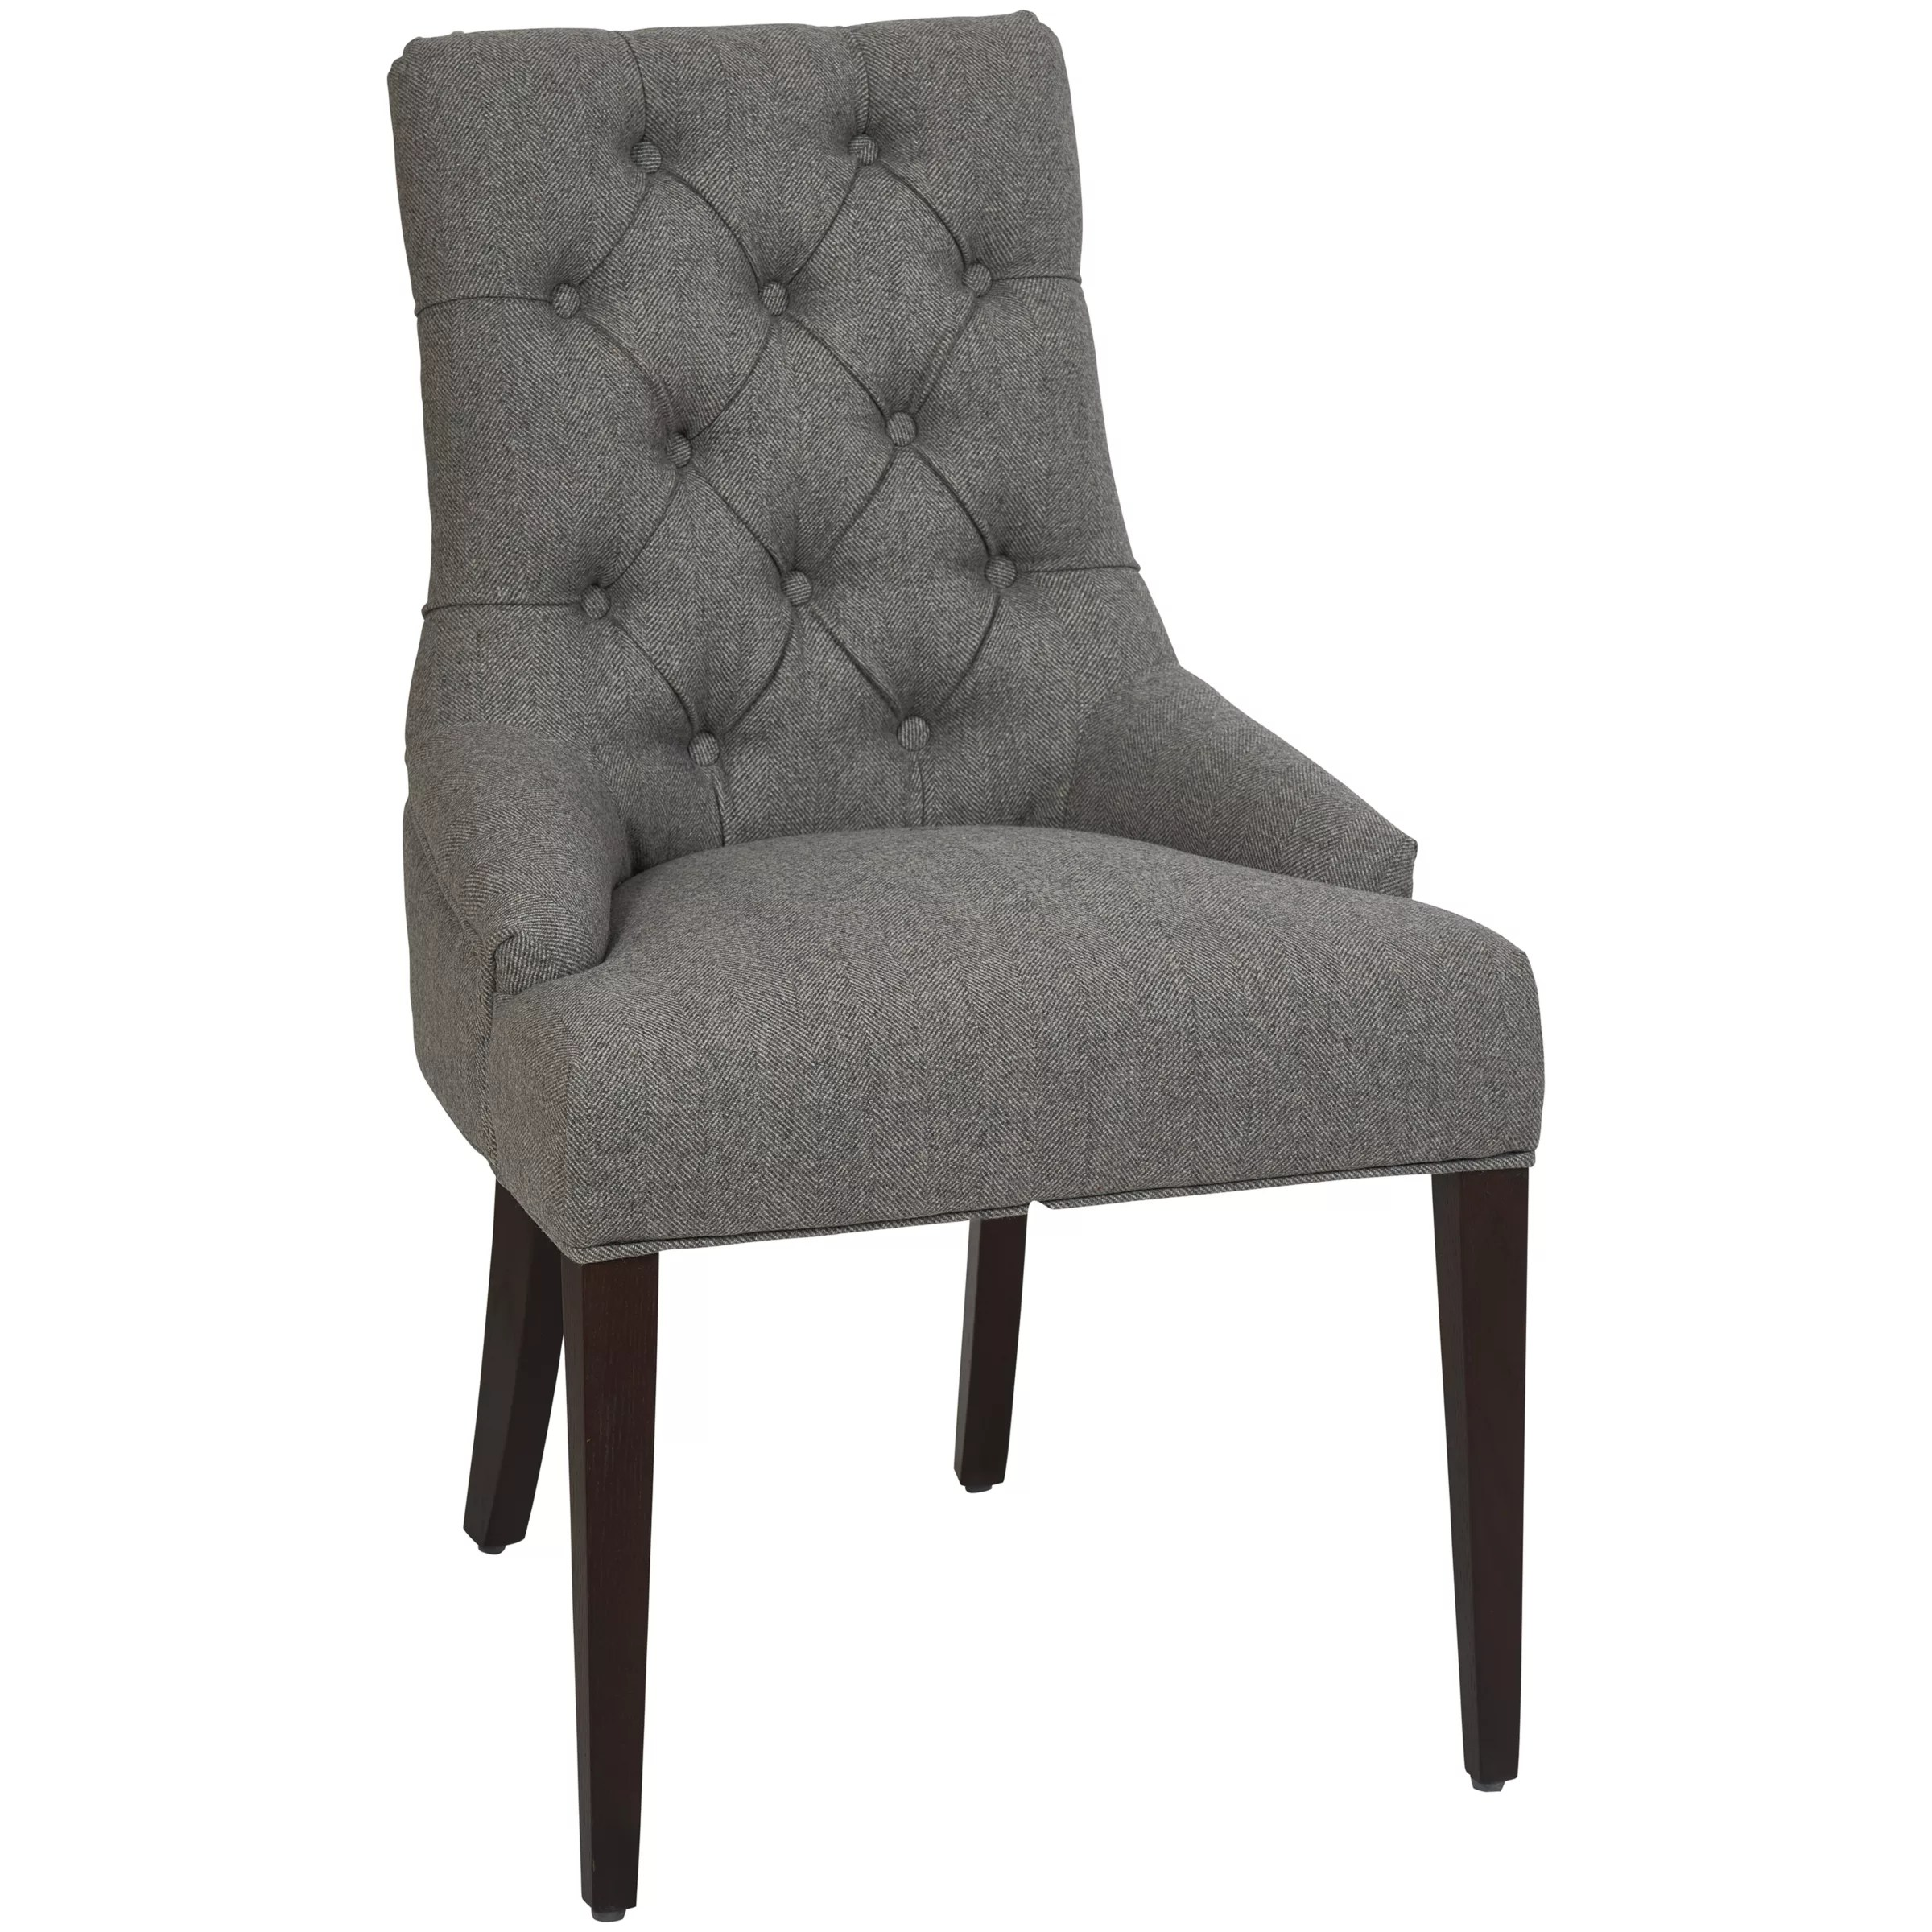 grey upholstered dining chairs activeaid shower chair neptune henley linen at john lewis